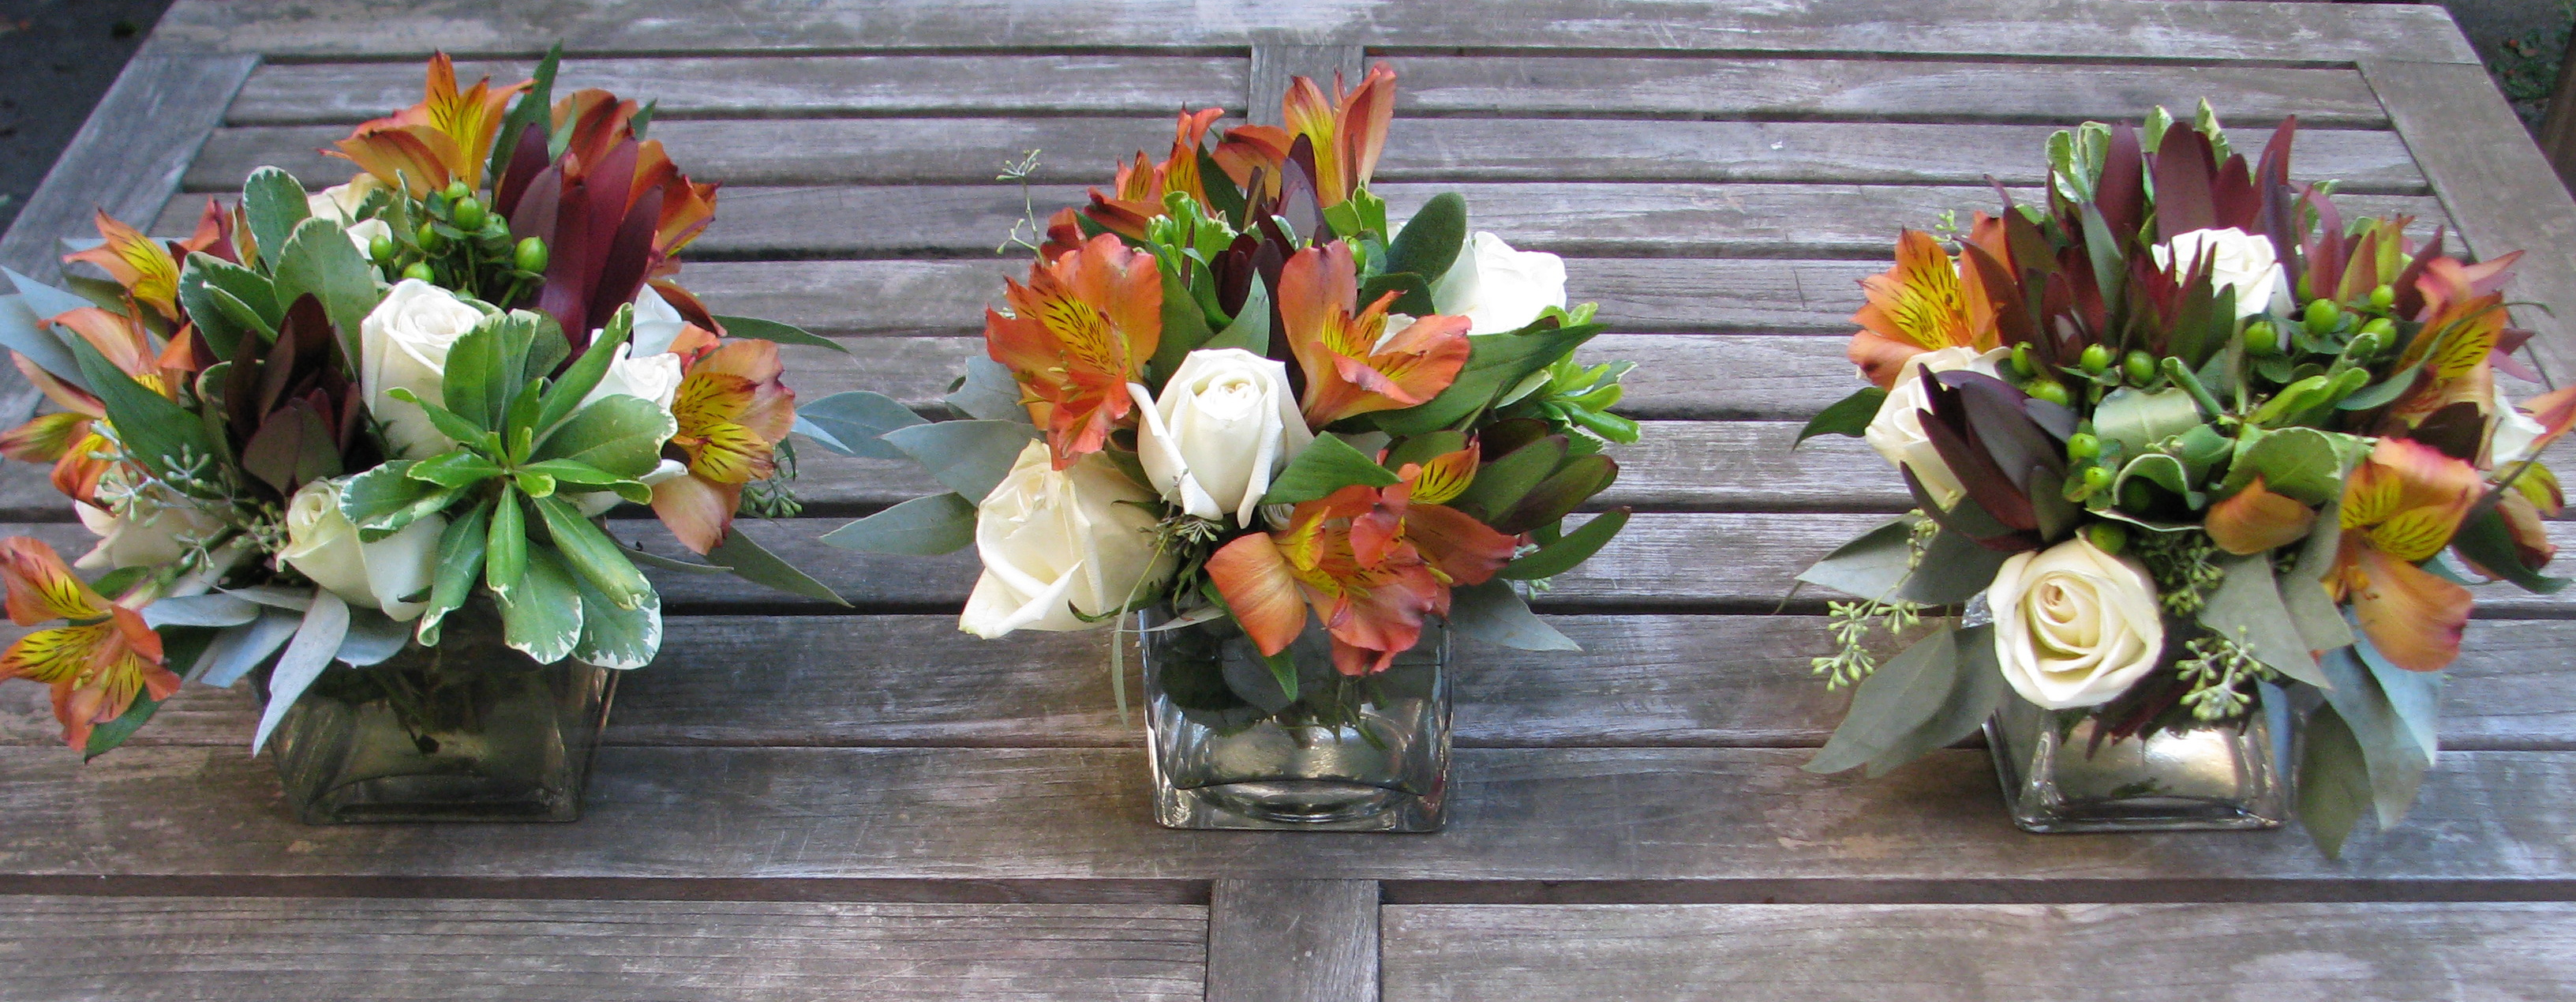 DIY Fall Flowers How To Make 35 Look Like